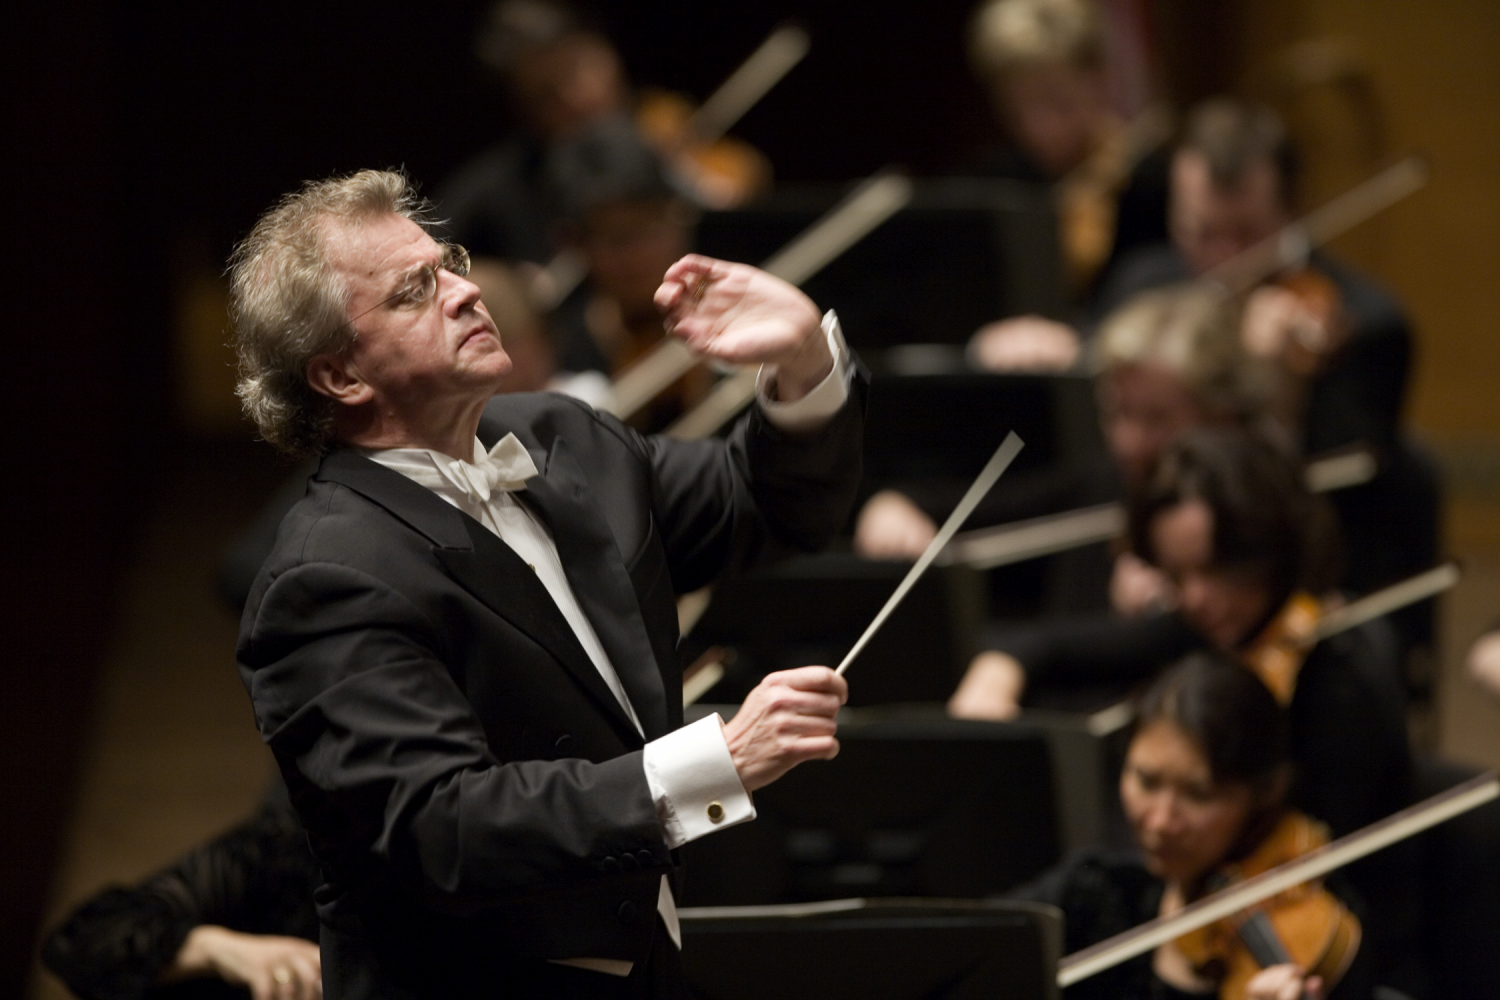 Conductor Osmo Vänskä discusses the March 11 & 13, 2016 Pittsburgh Symphony Orchestra concerts